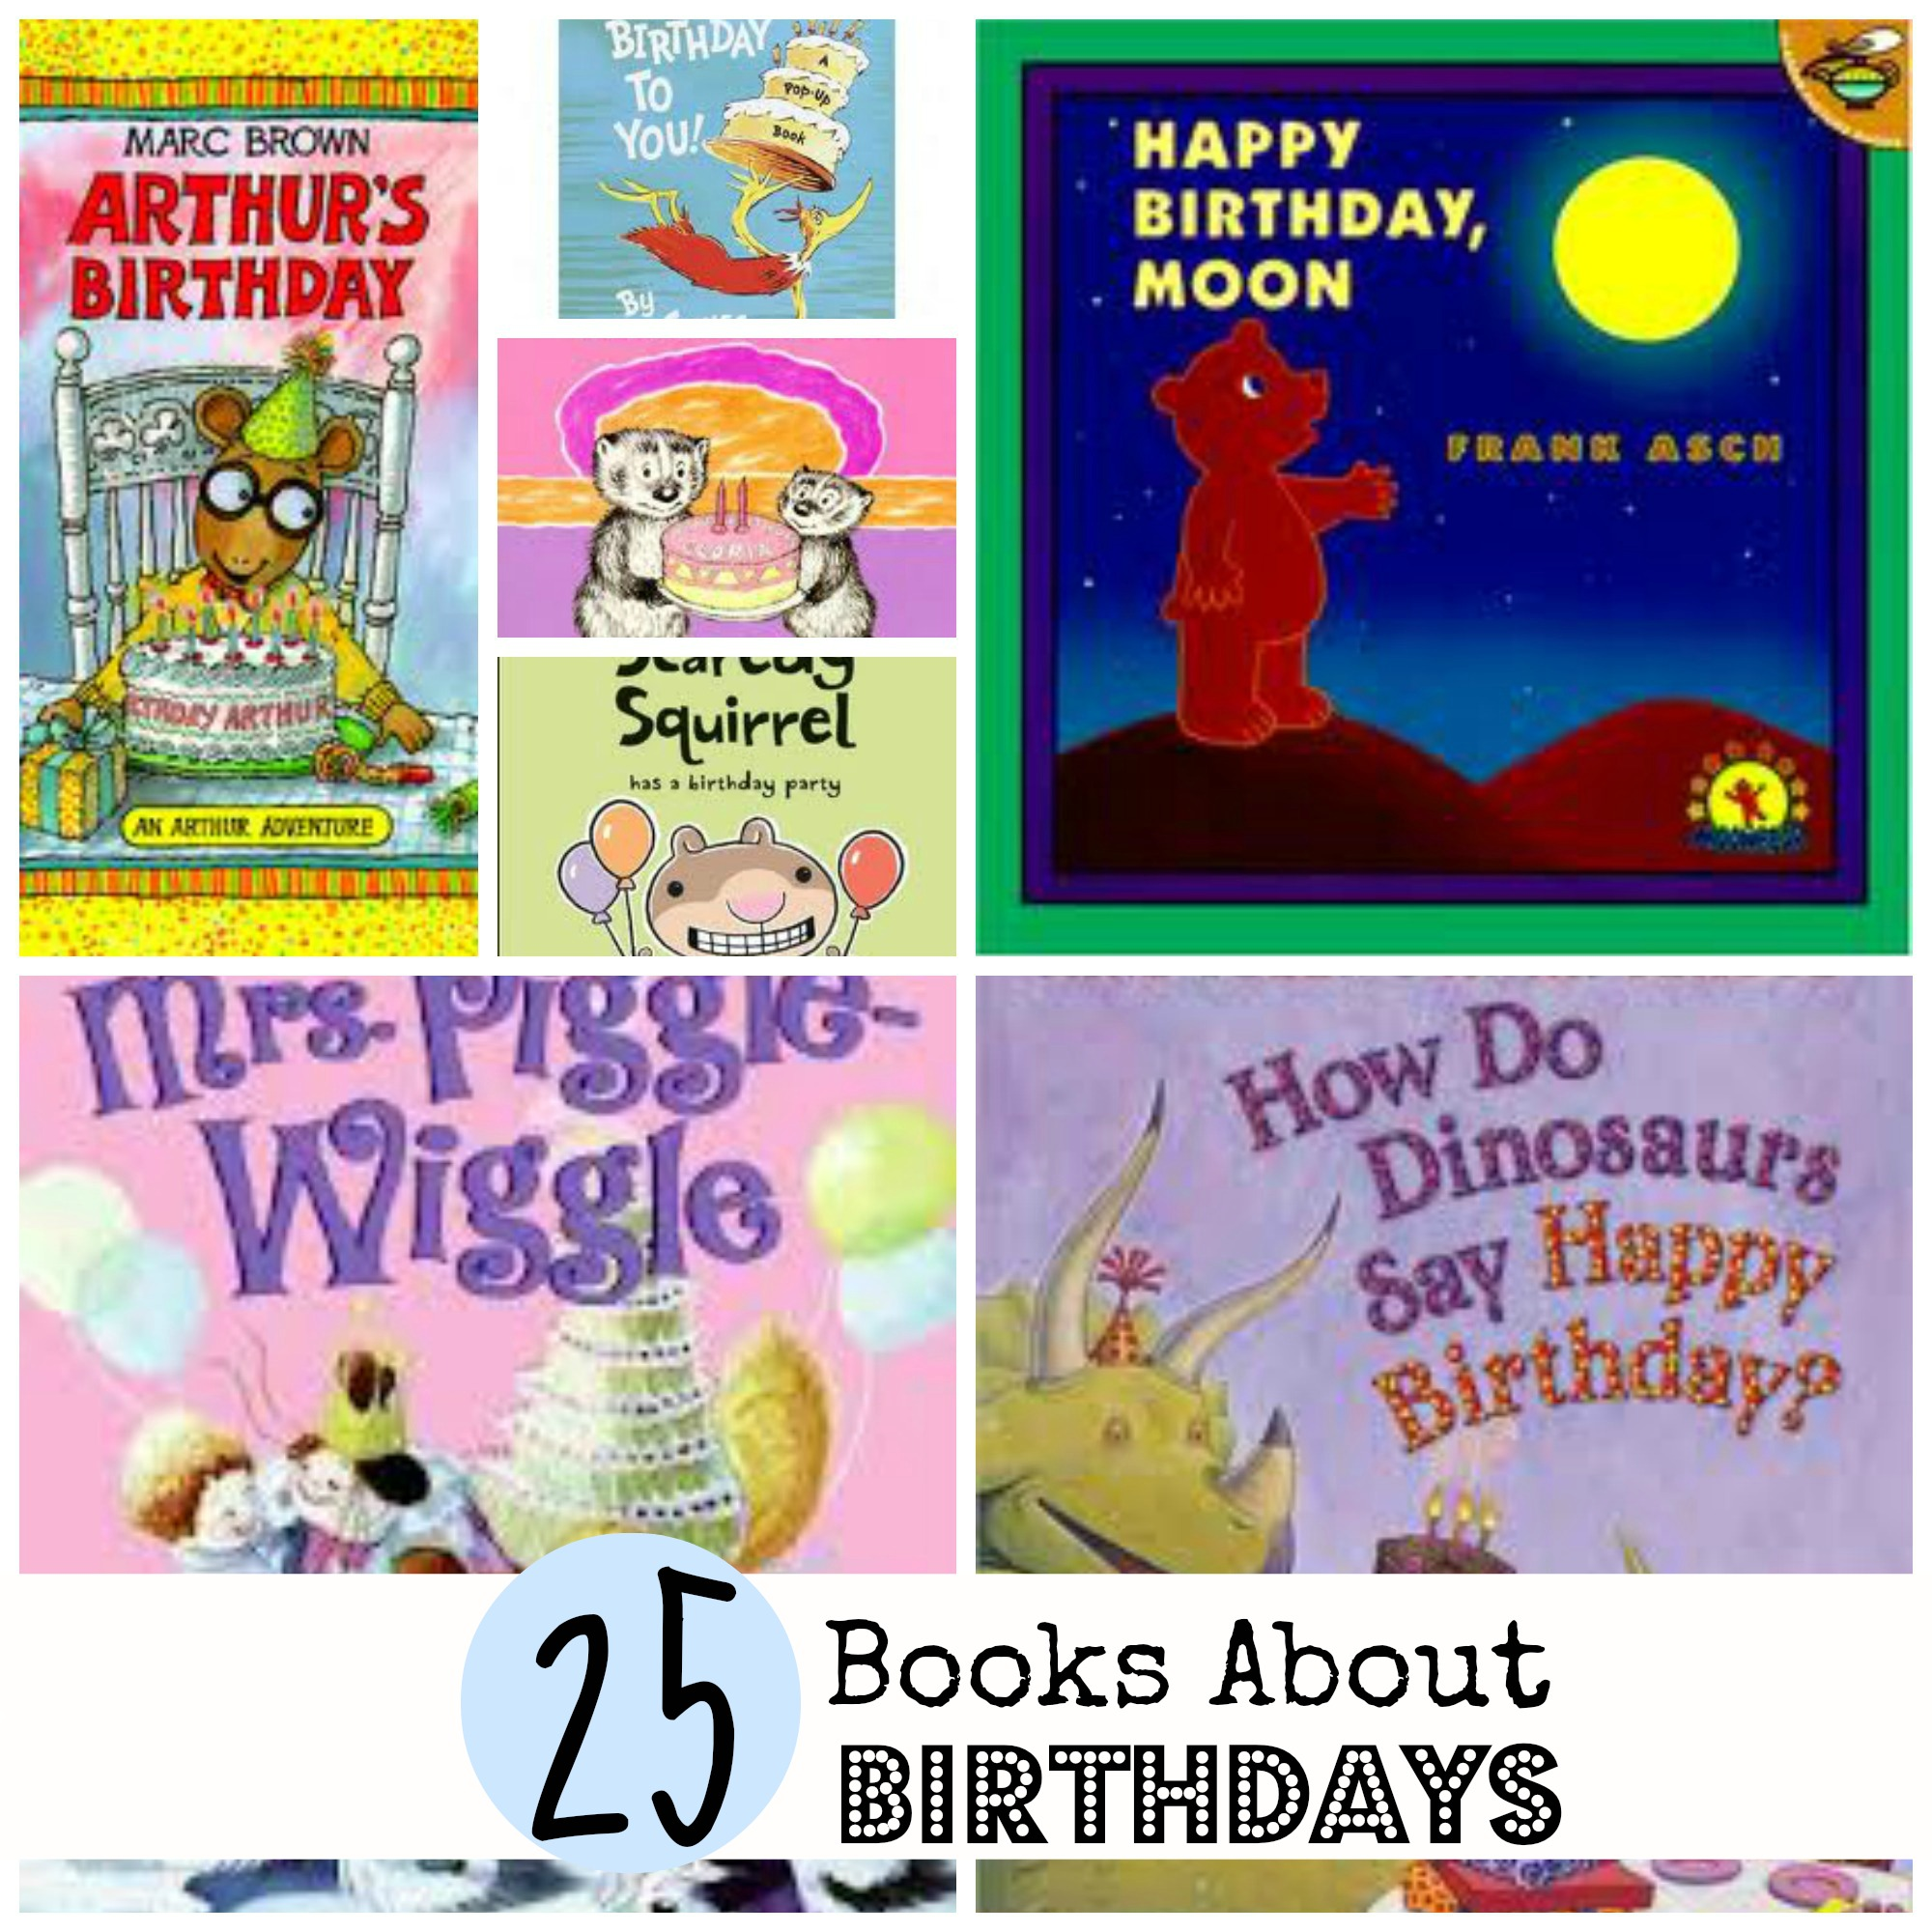 25 Books About Birthdays For Kids